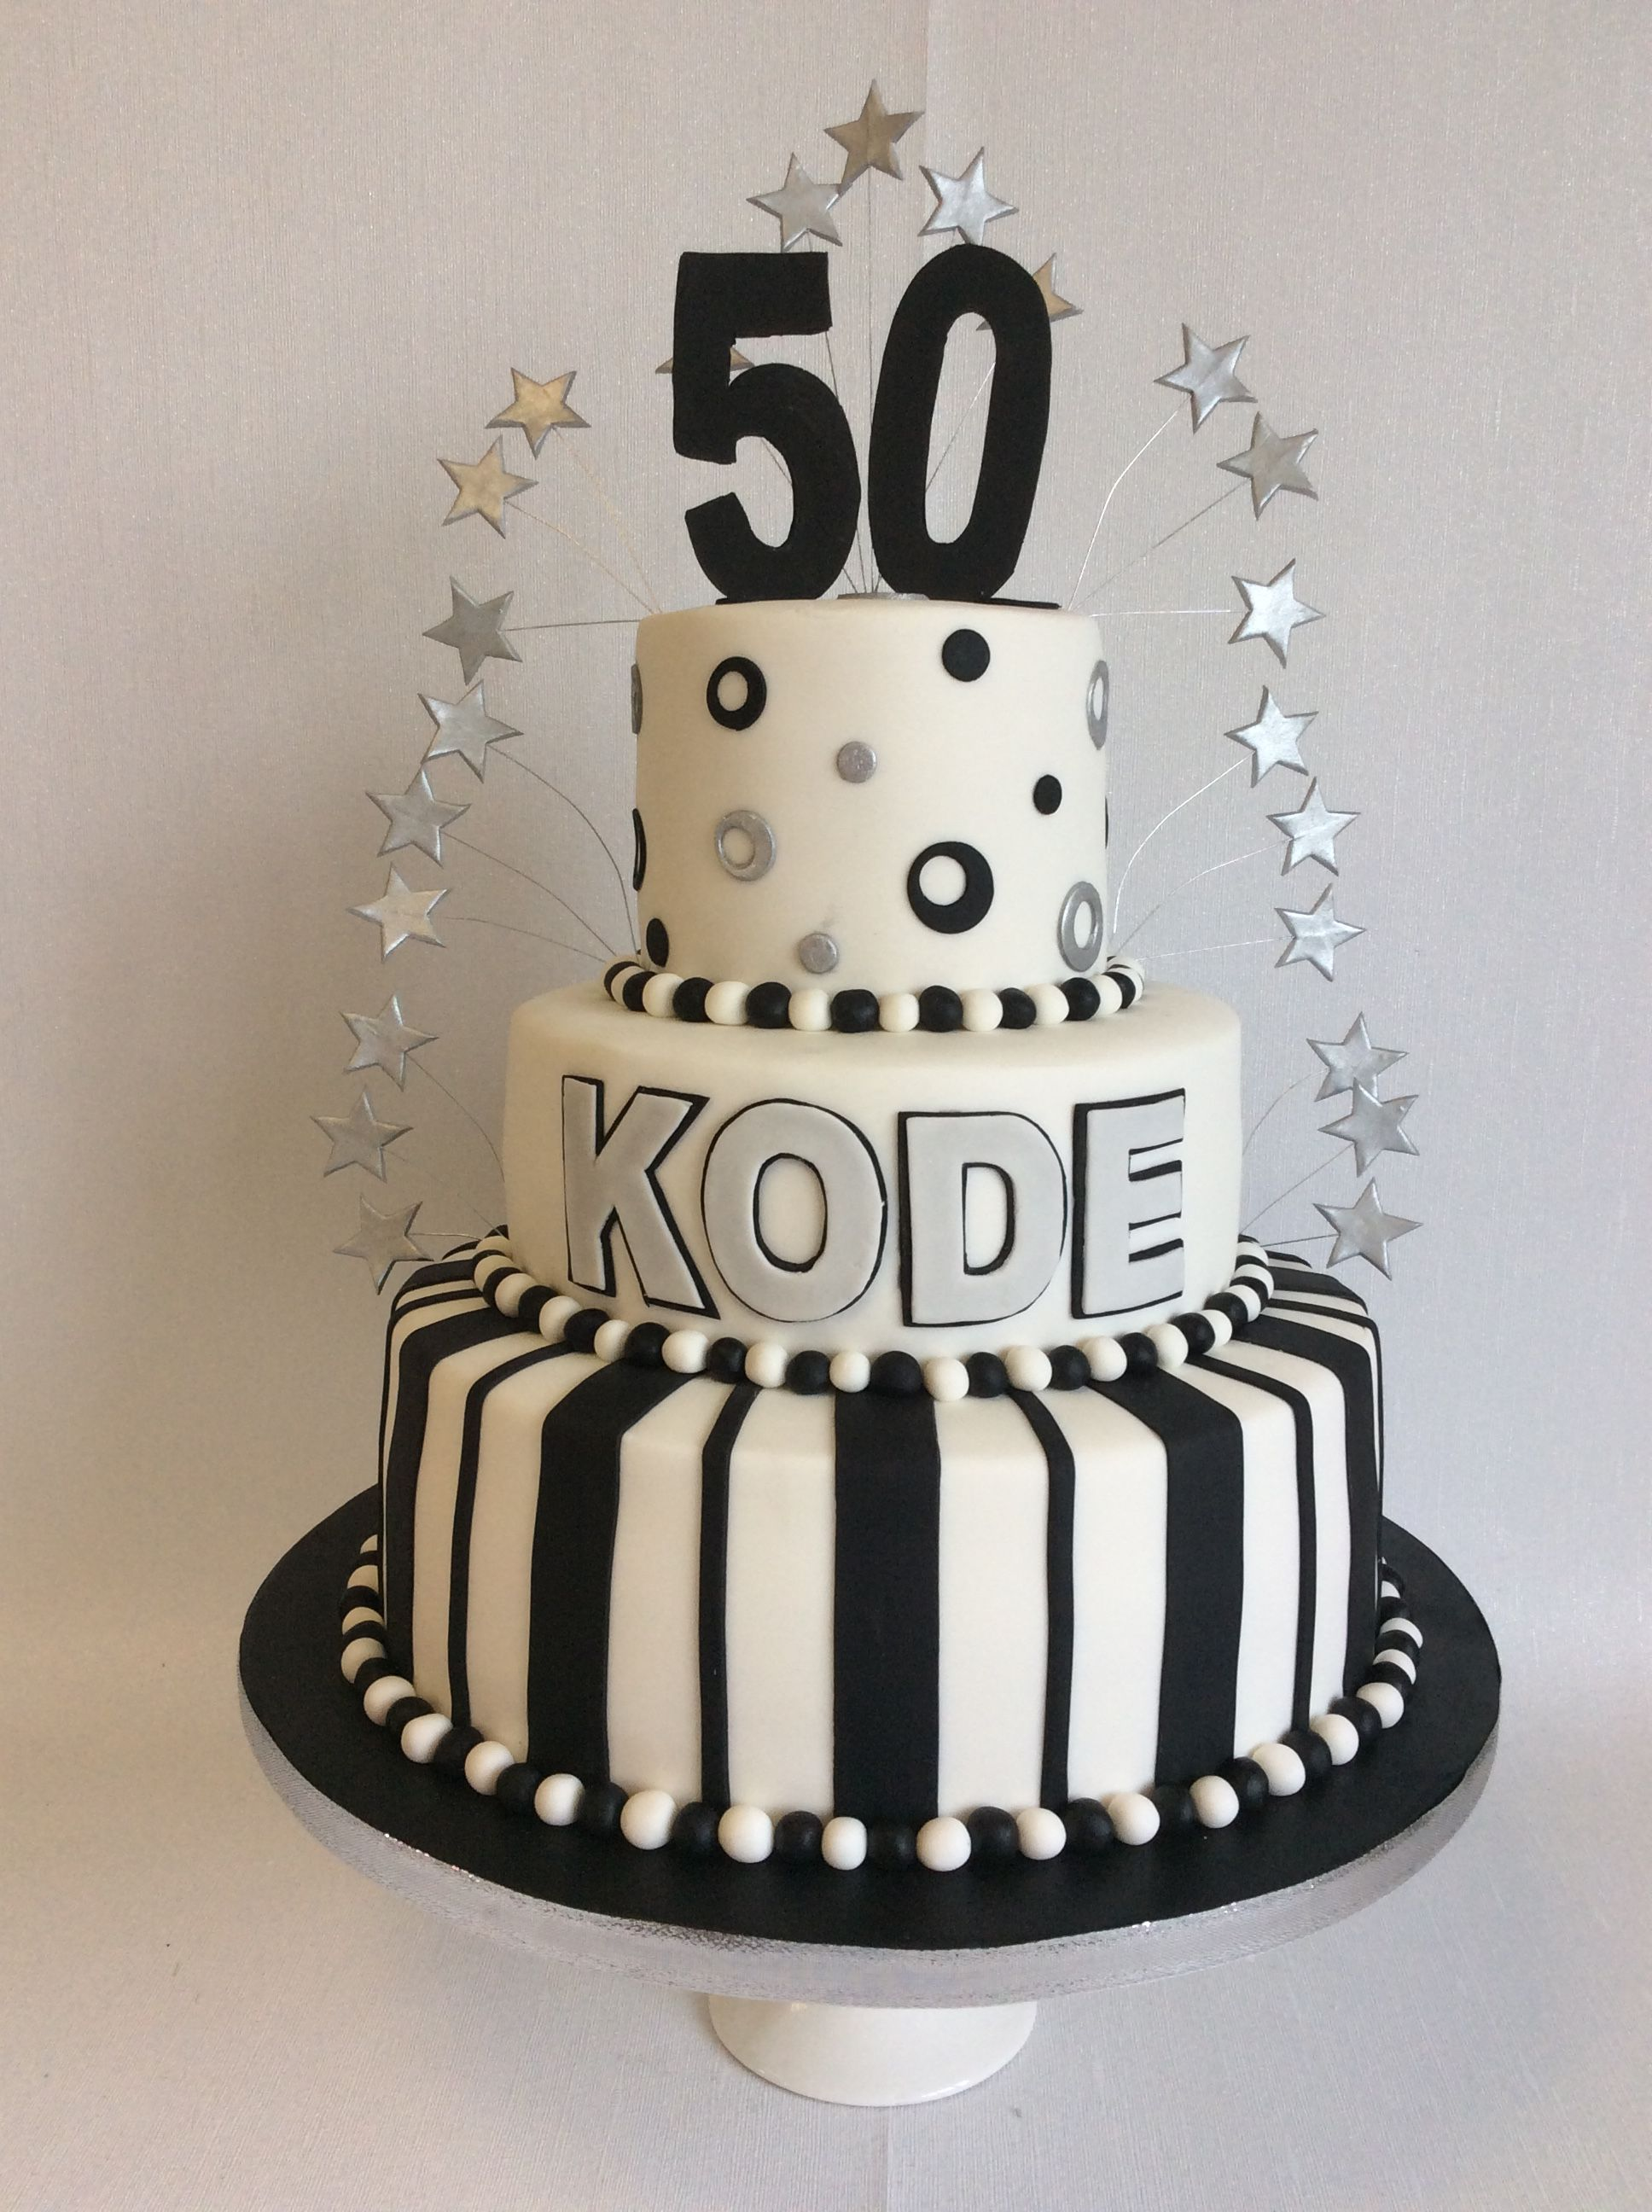 3 Tier Black Silver Theme 50th Birthday Cake